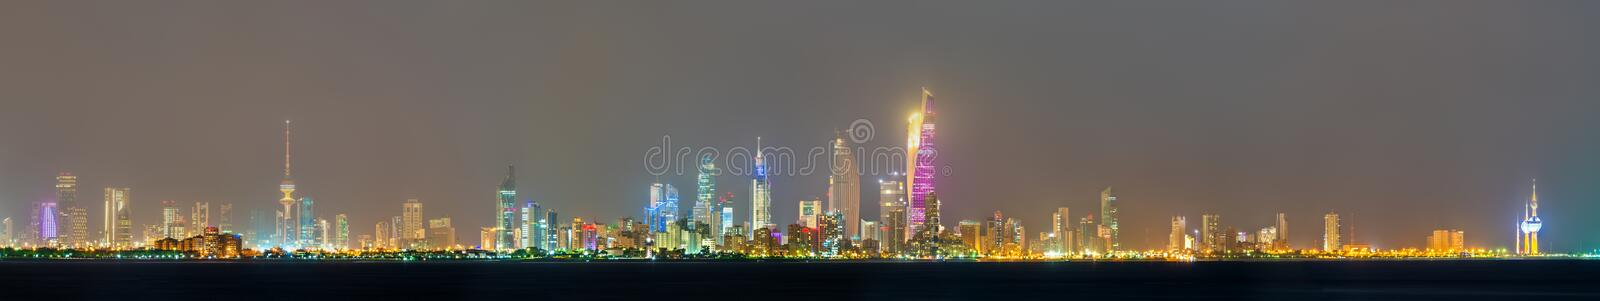 Night skyline of Kuwait City. The capital of Kuwait, a Persian Gulf country royalty free stock image